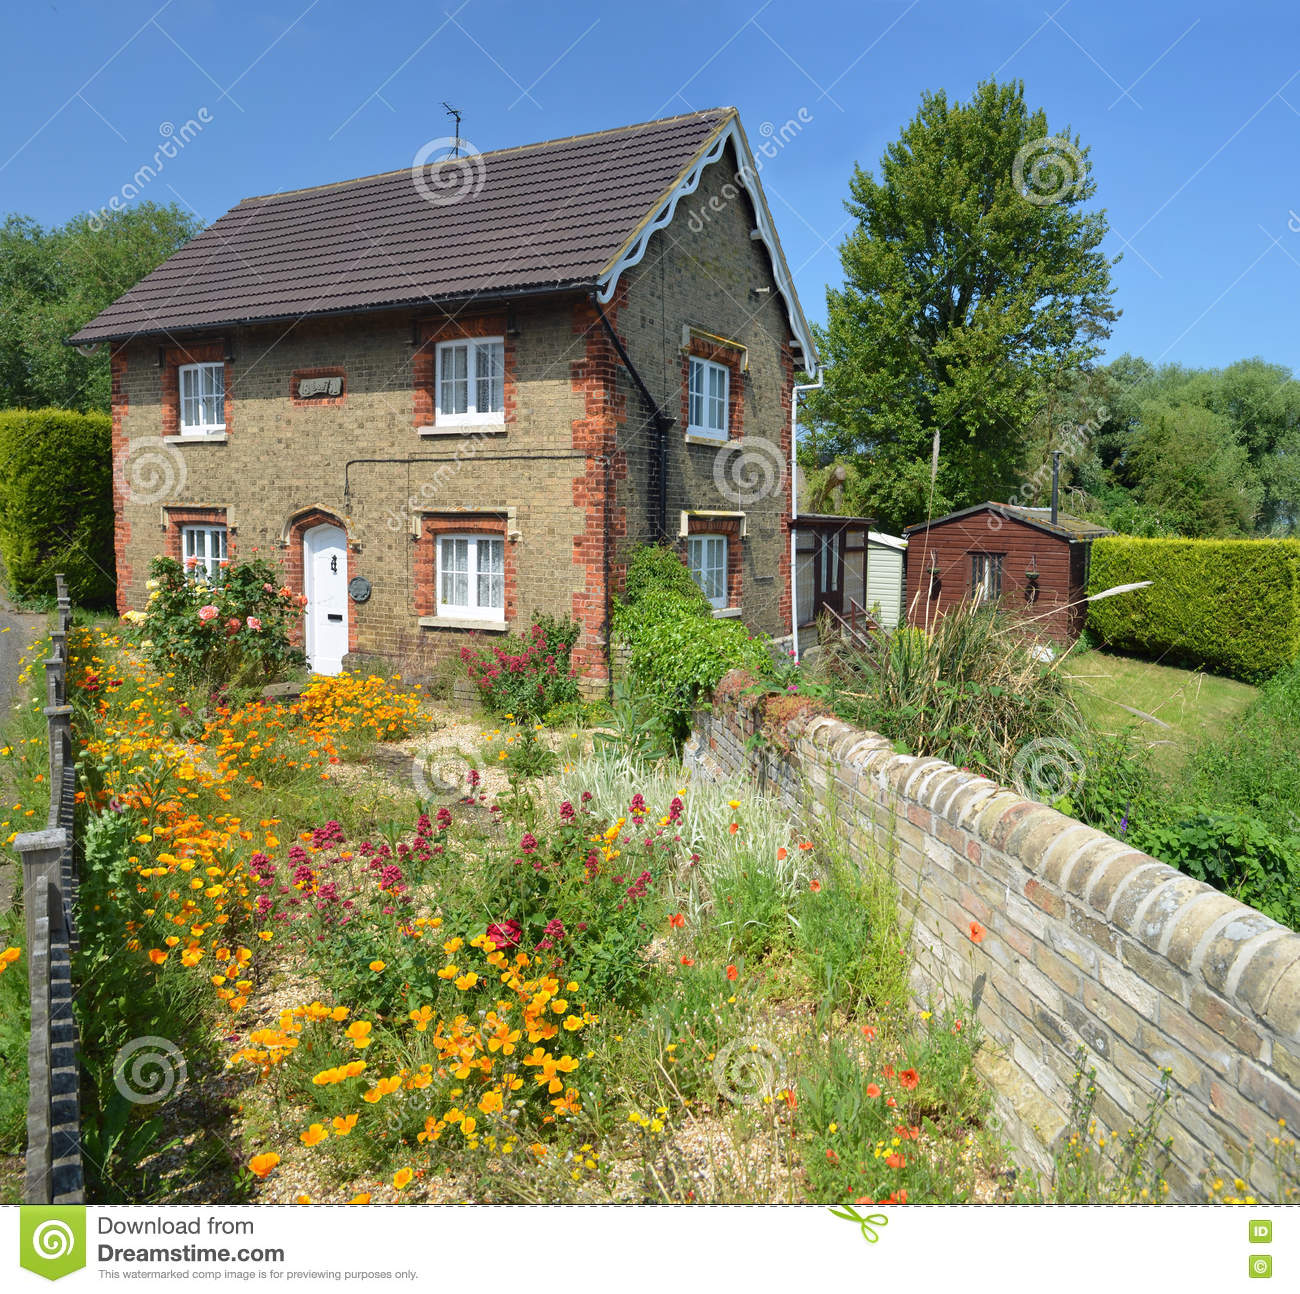 English Cottage With Colourful Cottage Garden And Wall